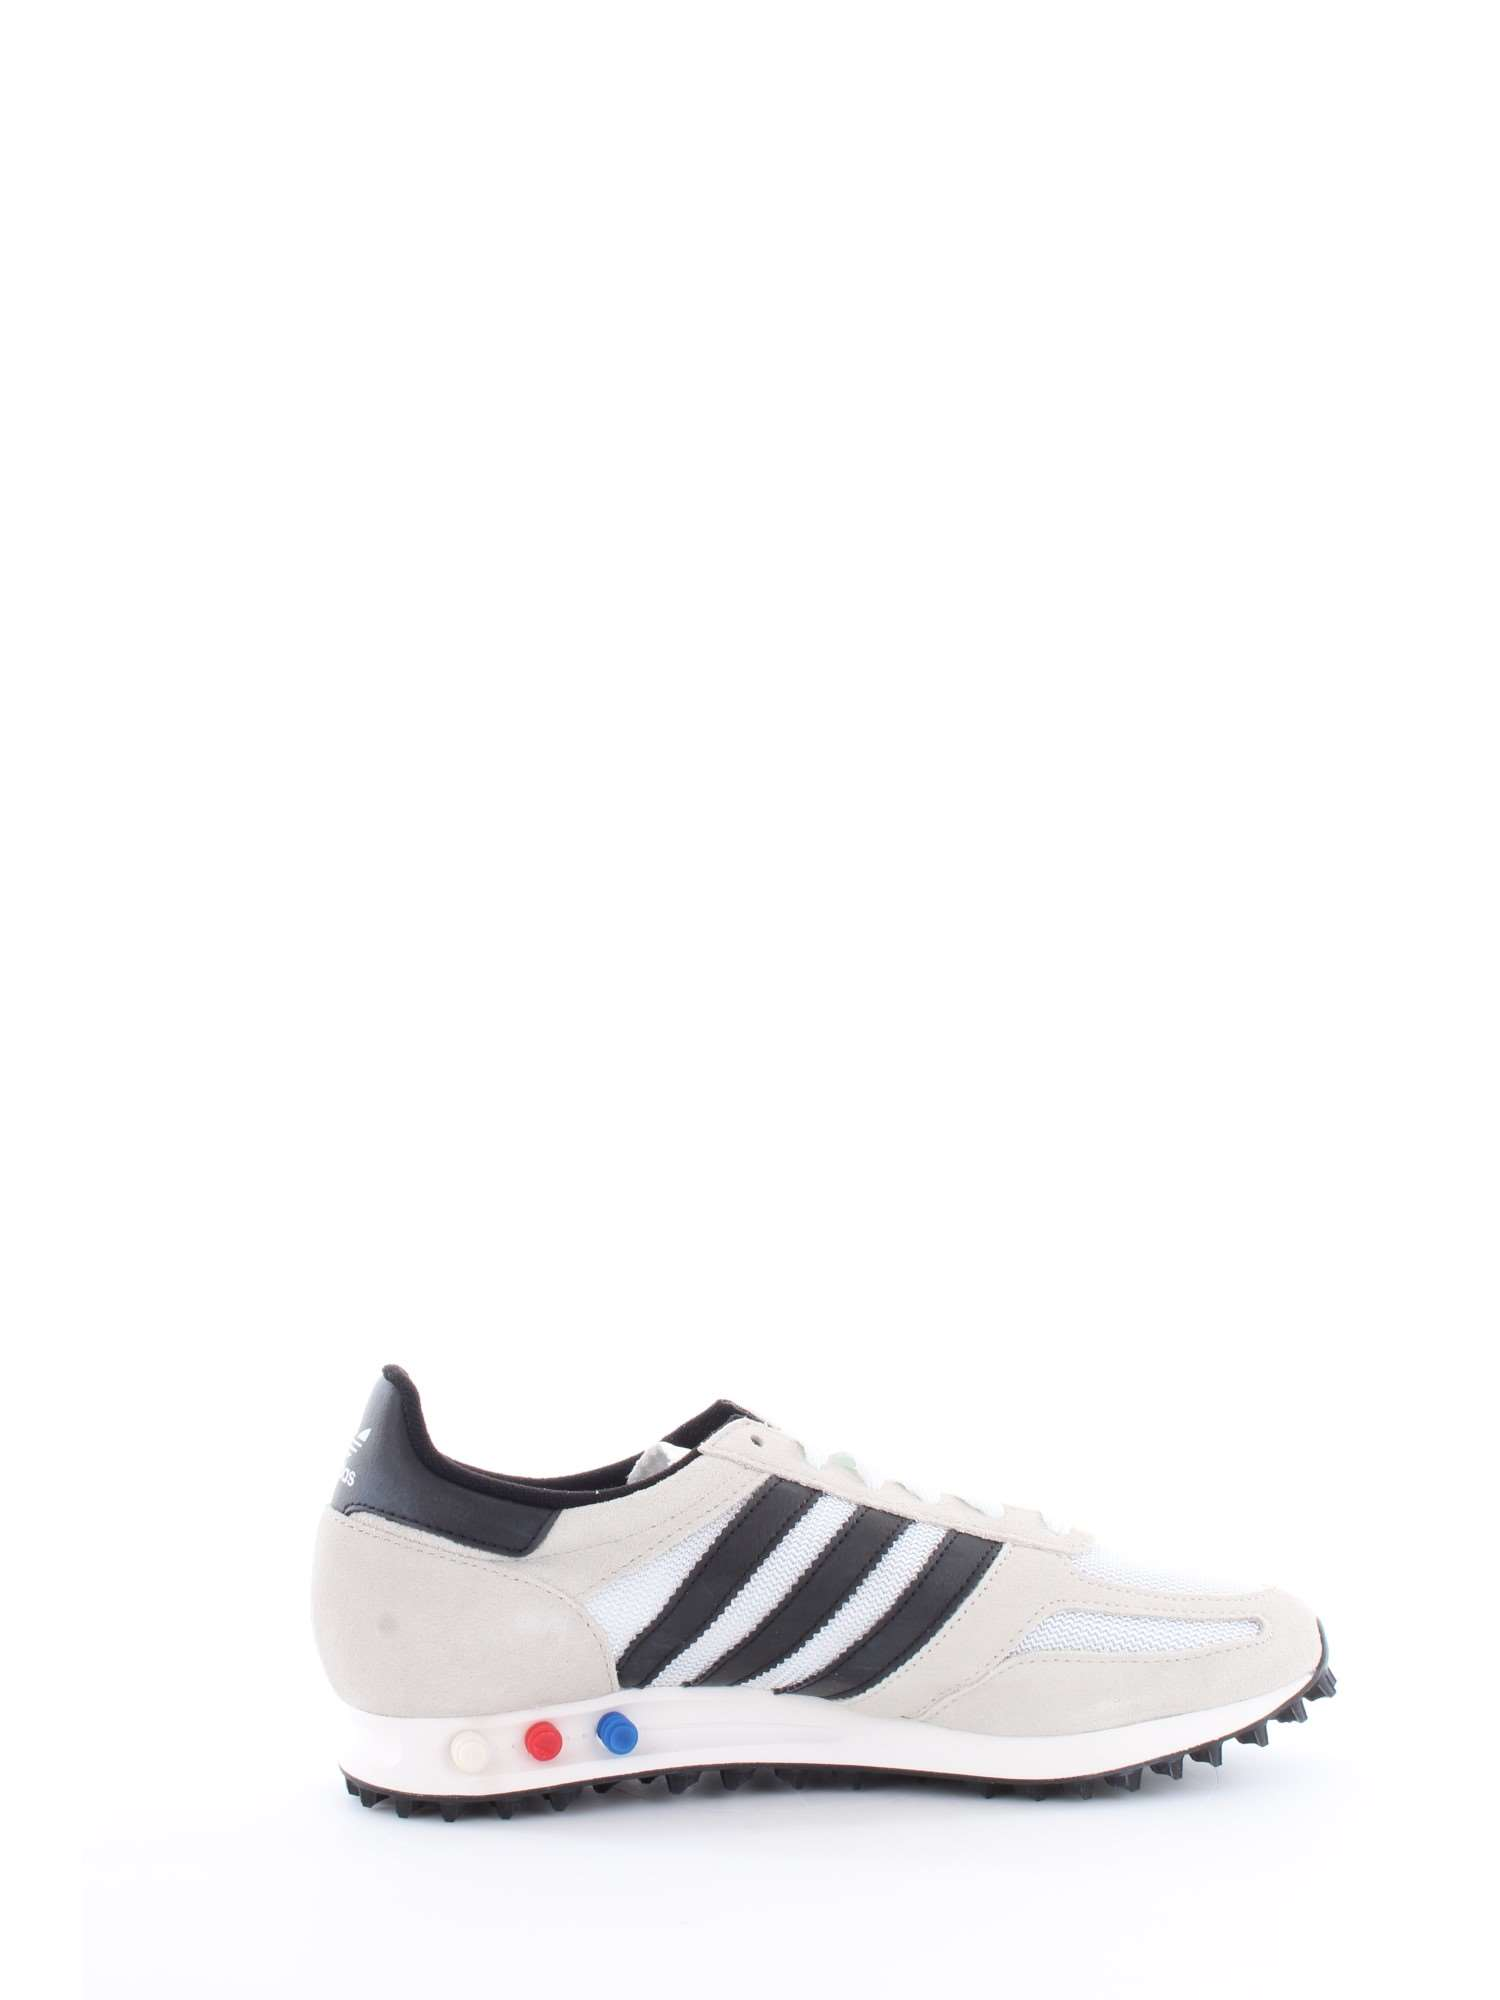 online store ad622 97632 Adidas-Originals-BY9322-LA-TRAINER-OG-Bianco-Sneakers-